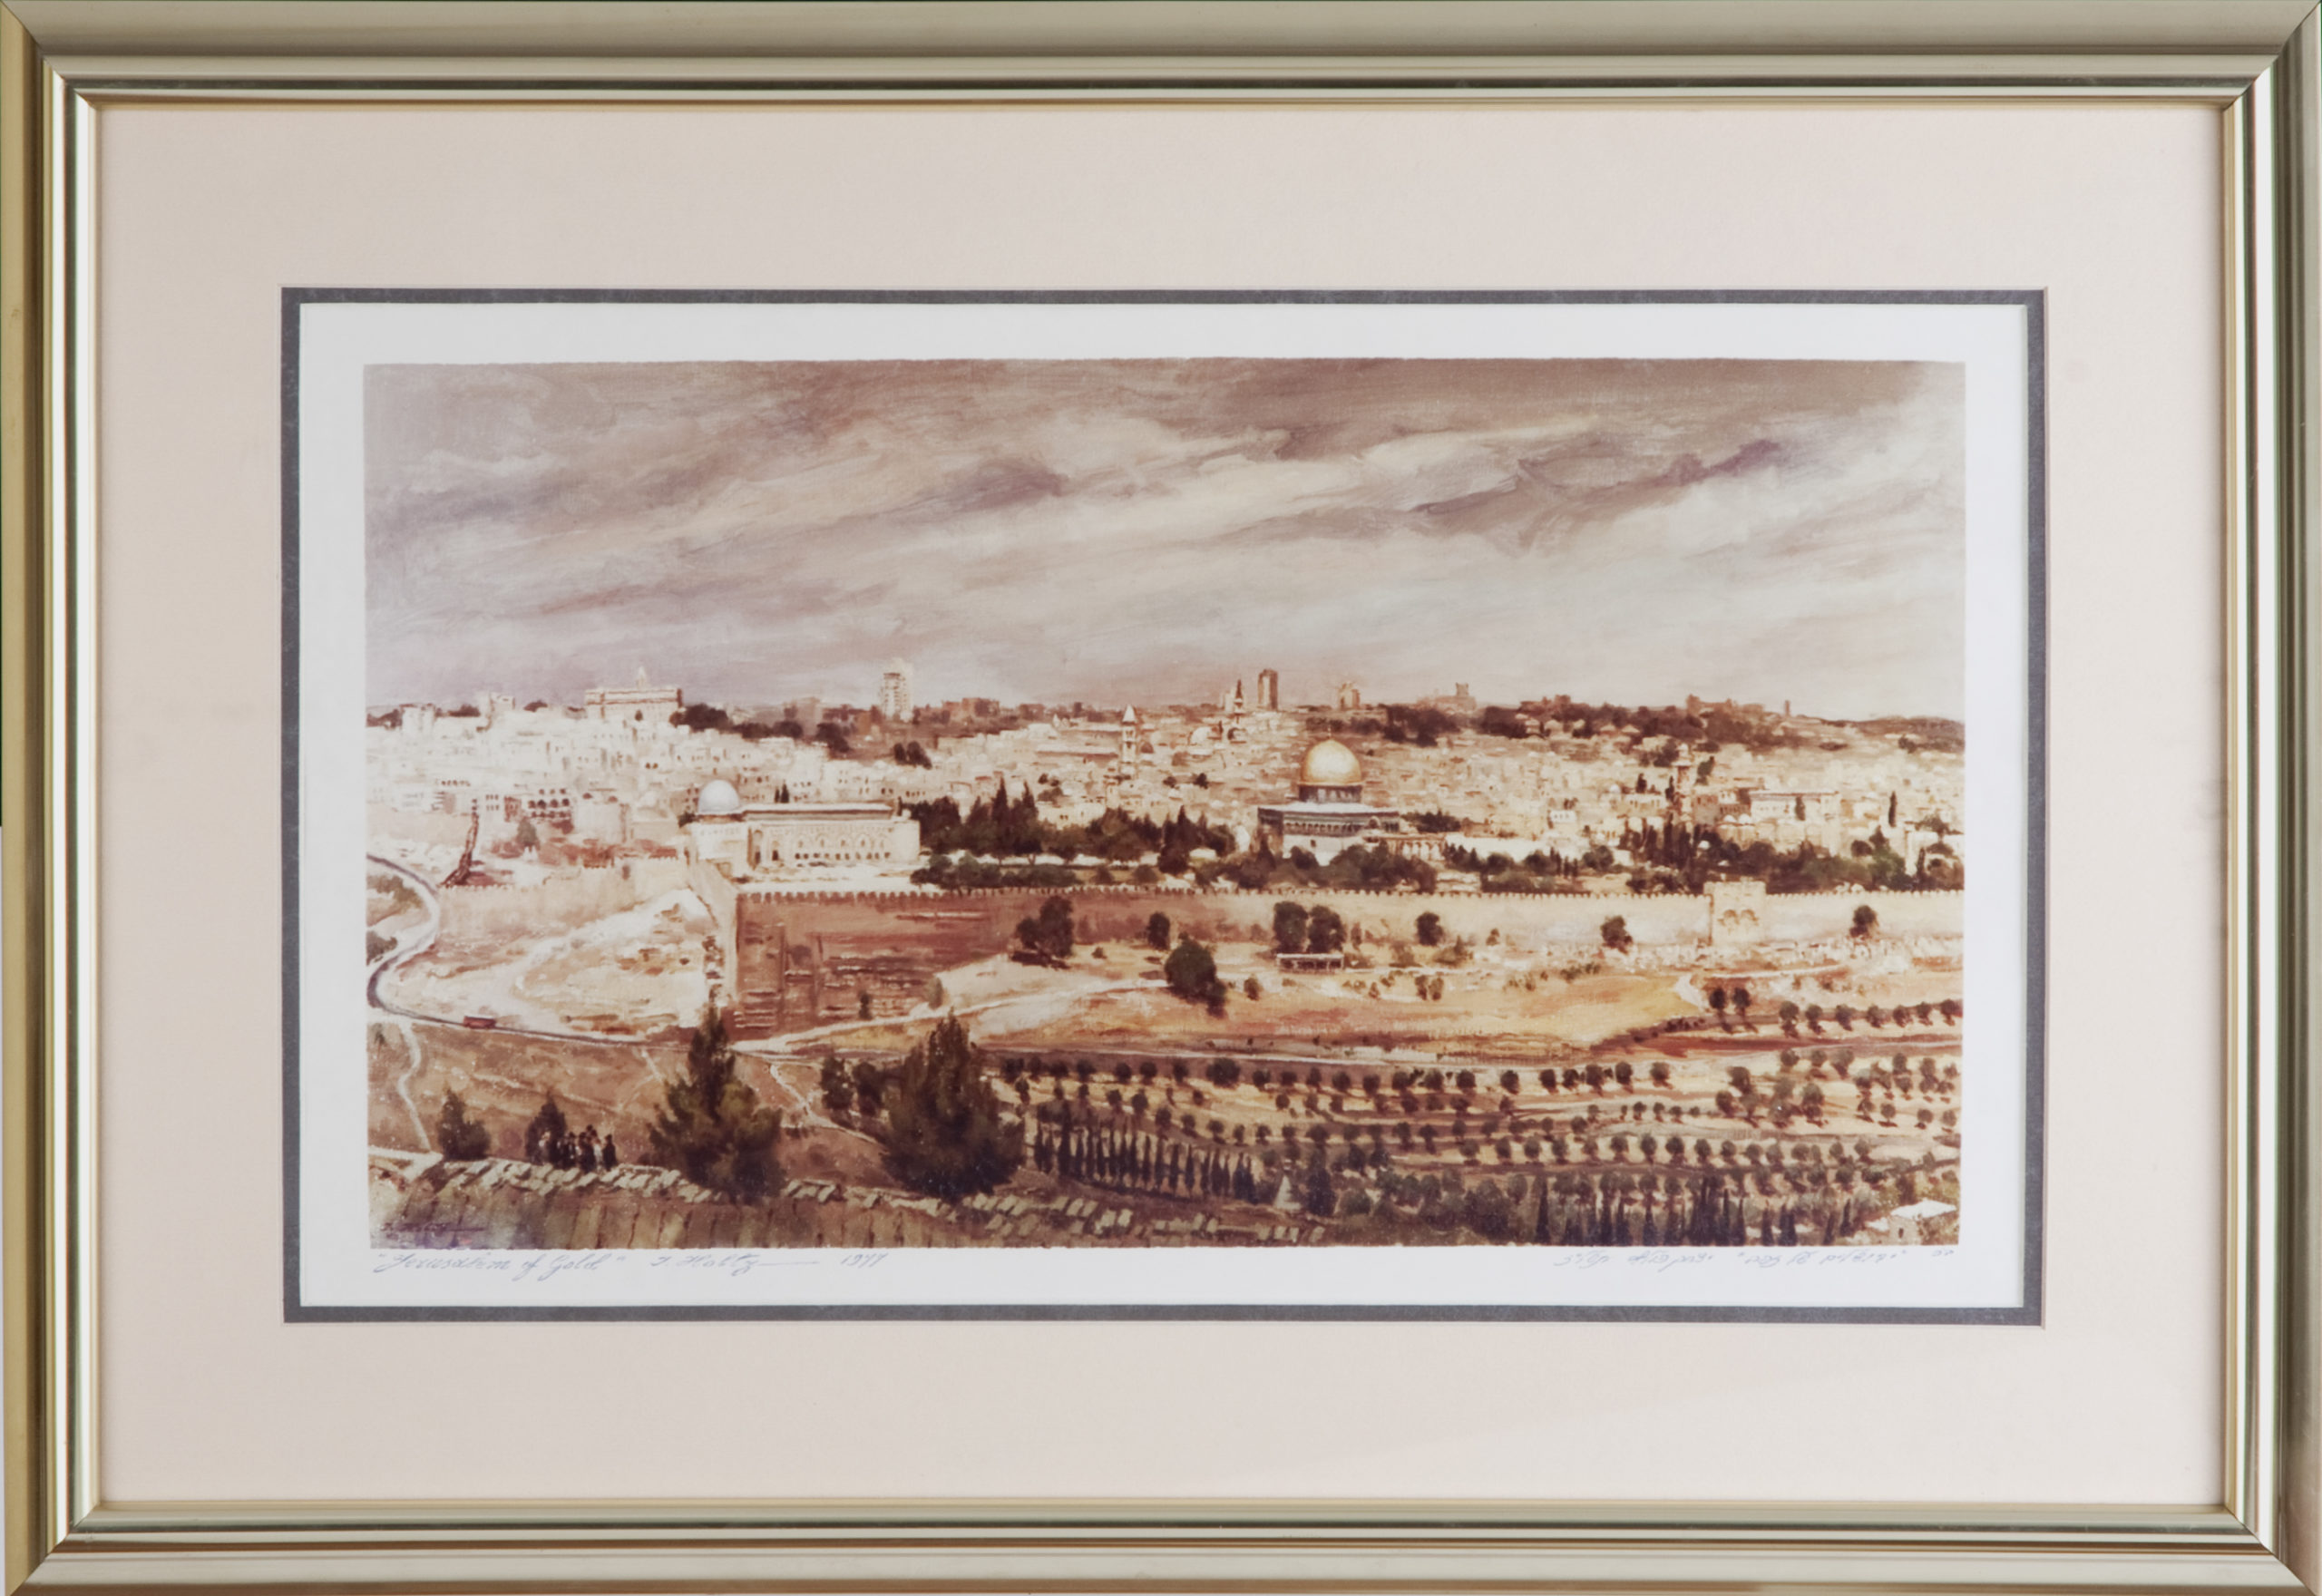 158 Jerusalem of Gold 1977 - Photograph - Frame: 26 x 18 x 2